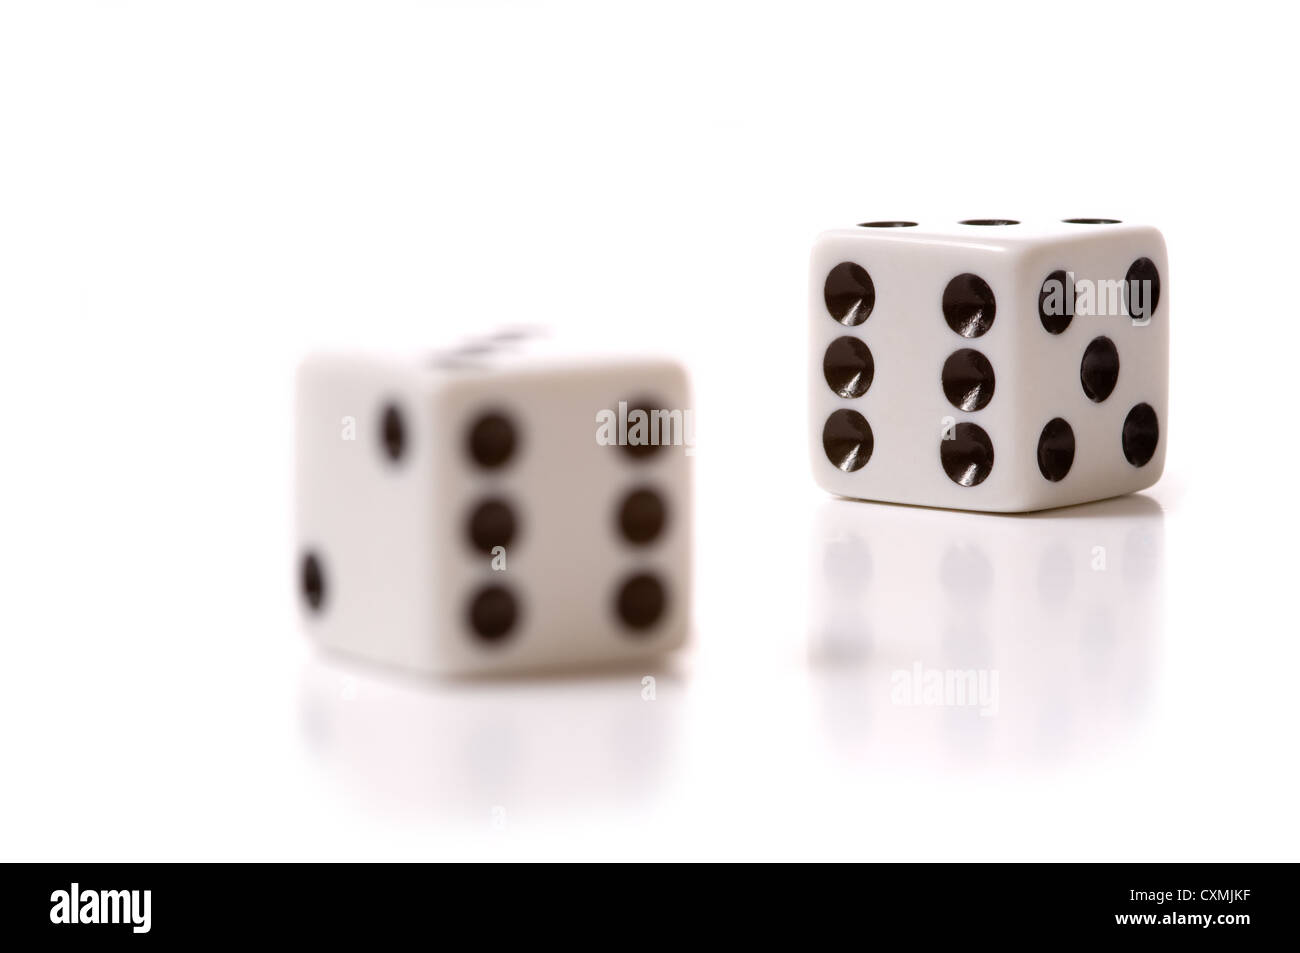 a set of White dice on a white background - Stock Image